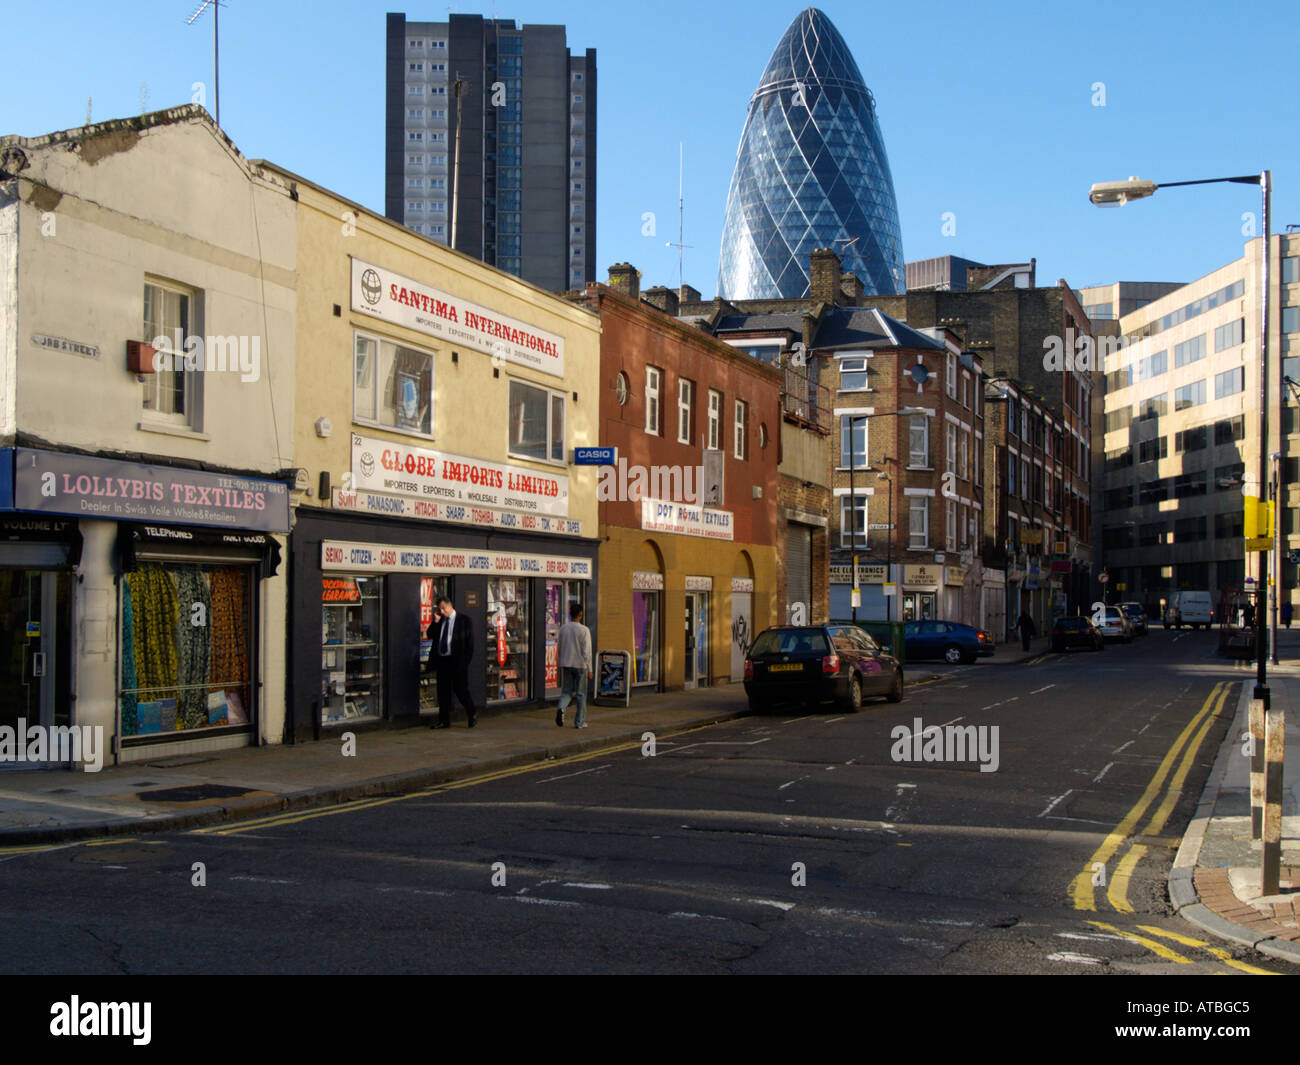 The gherkin Swiss Re building by Sir Norman Foster in the city financial district as seen from a less wealthy area London UK - Stock Image